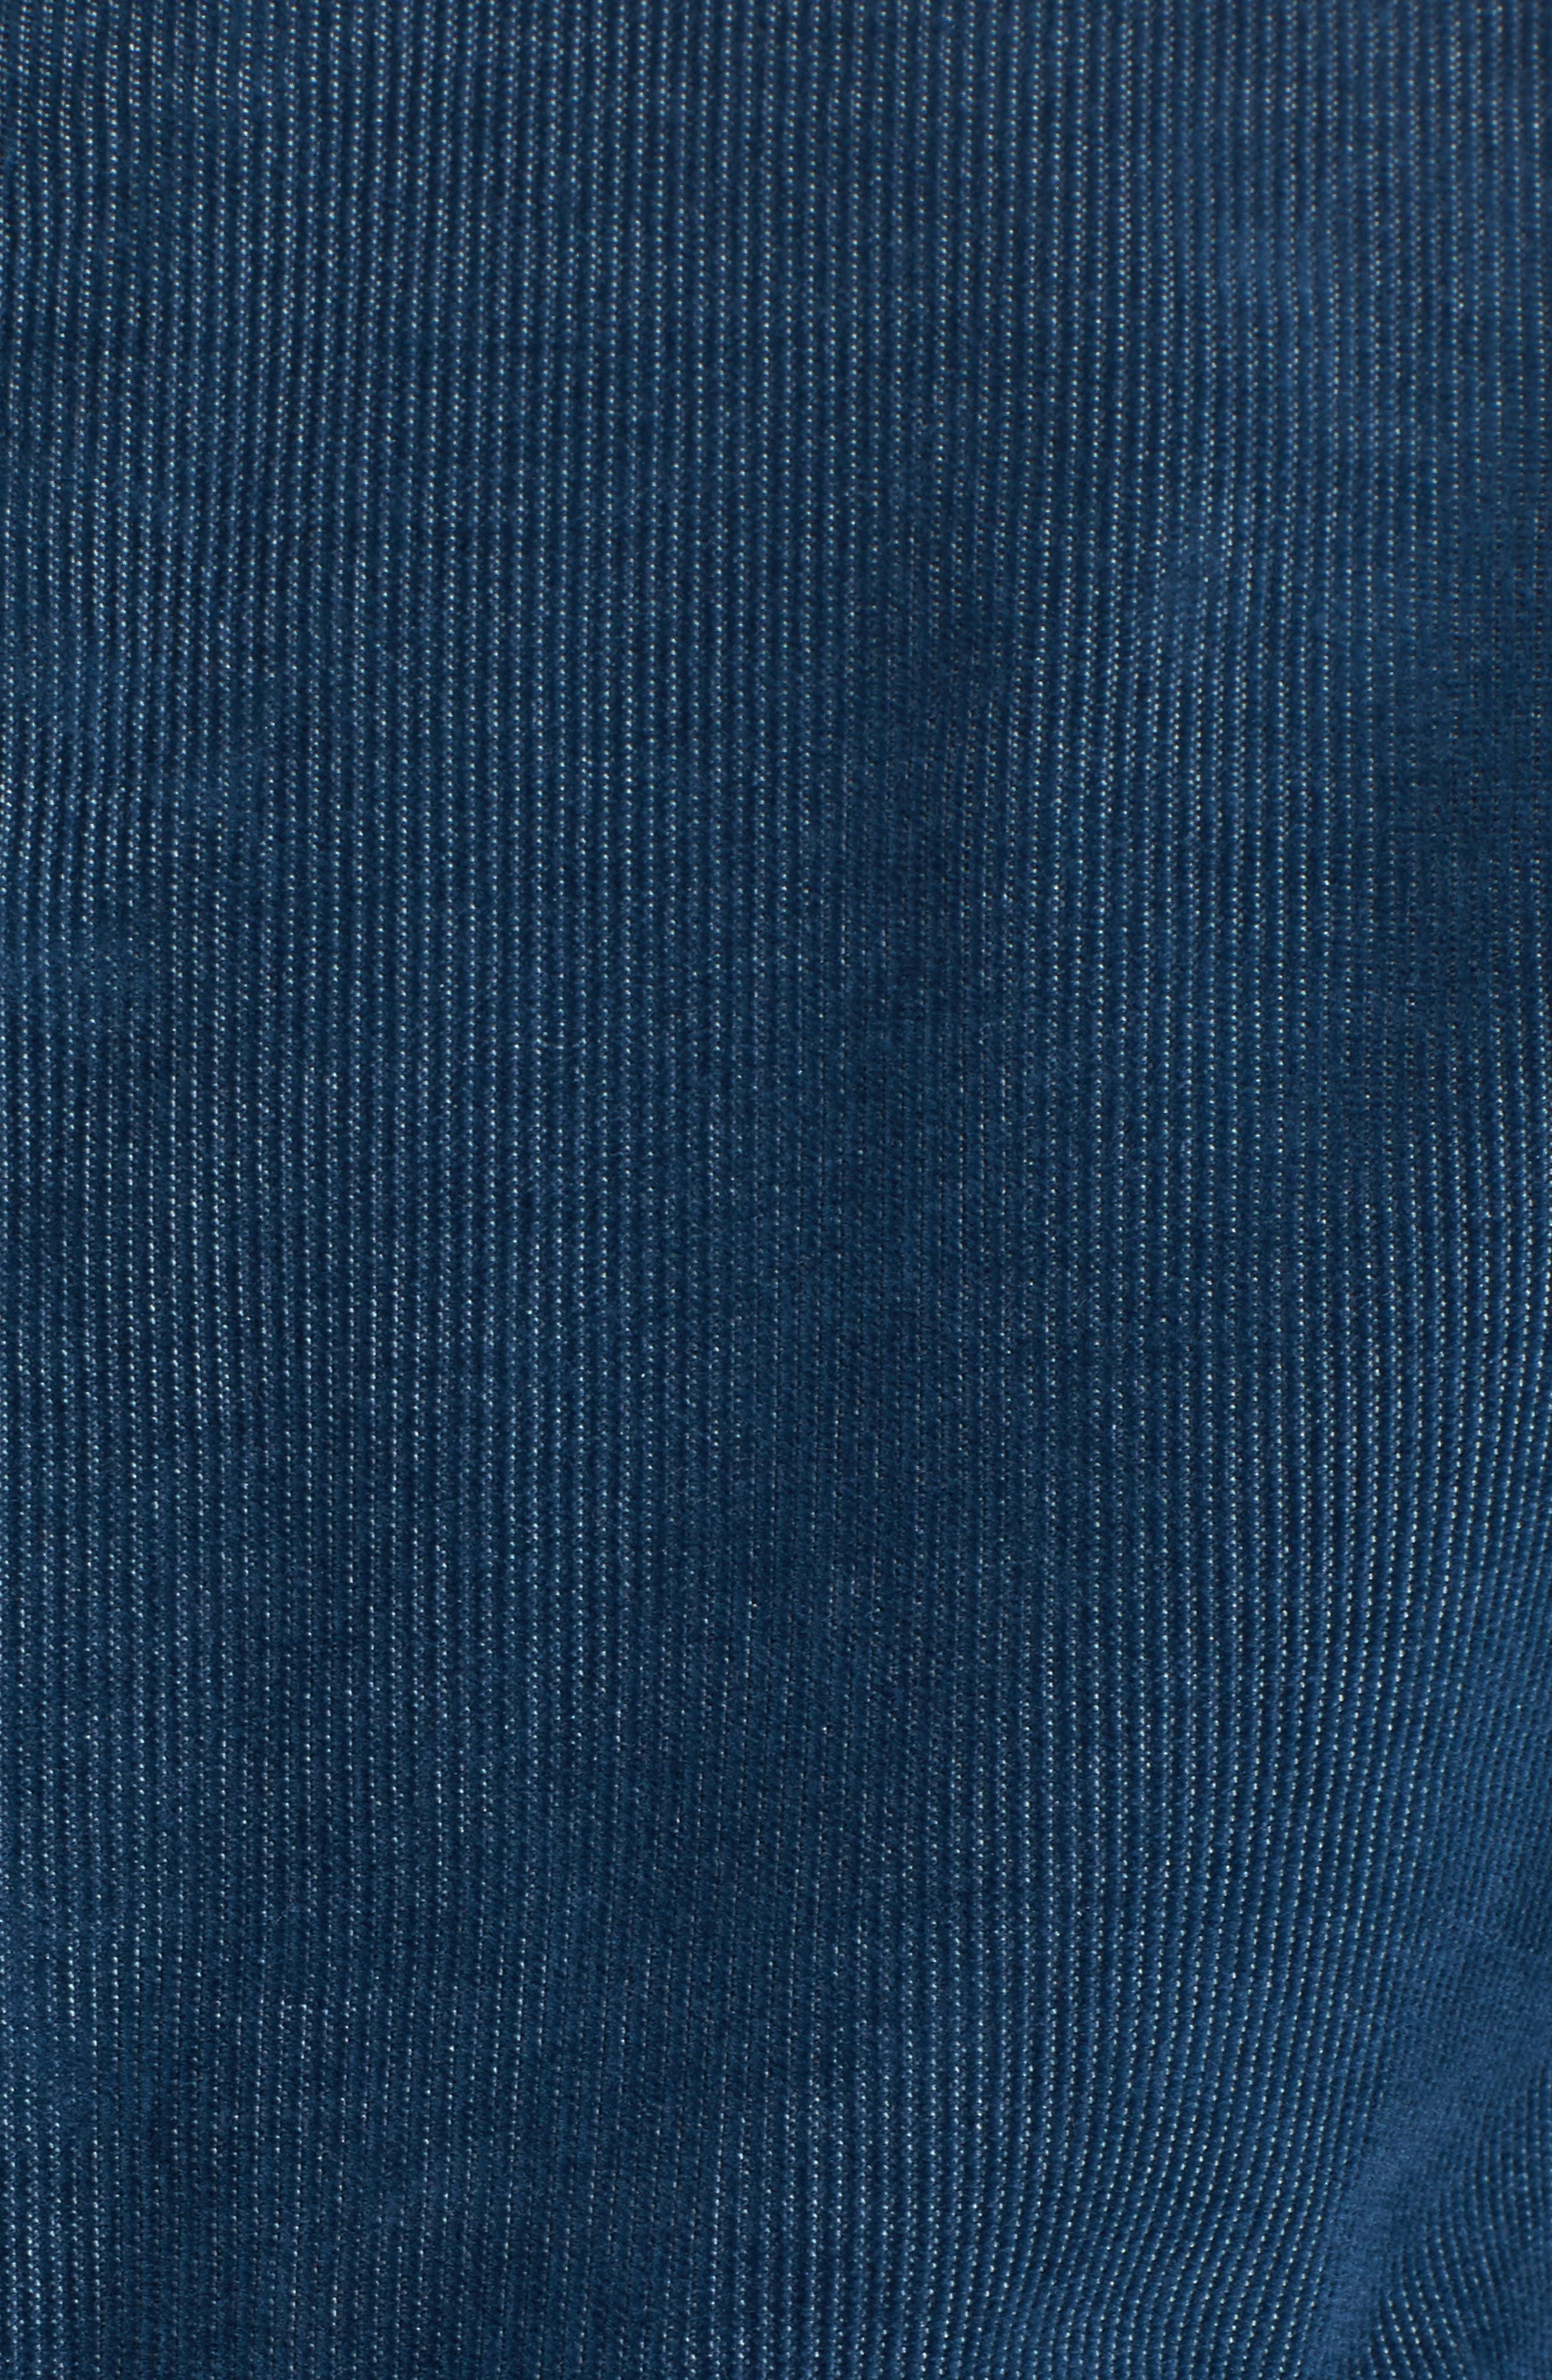 Cheriton Corduroy Shirt,                             Alternate thumbnail 5, color,                             Blue